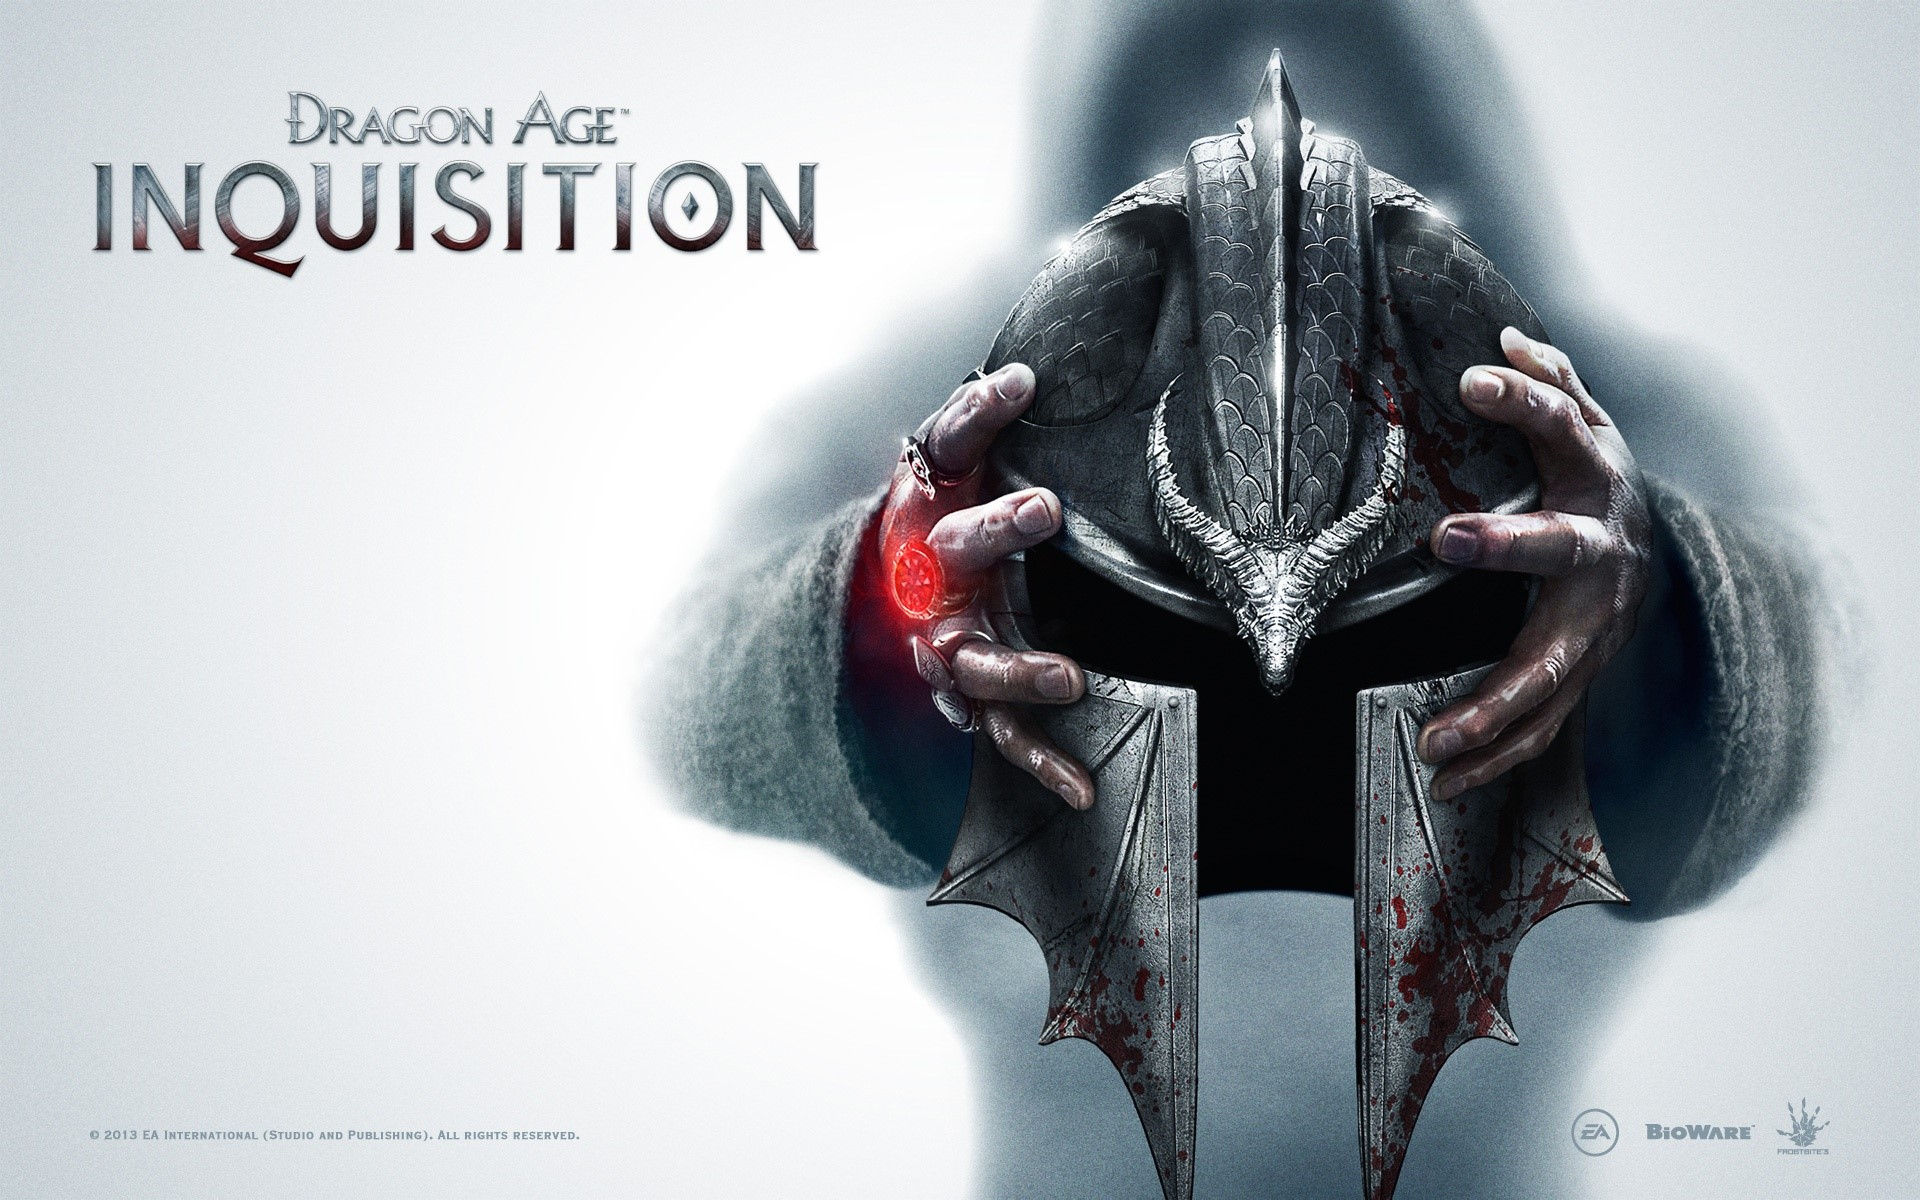 Fondos de pantalla Dragon age 3 Inquisition